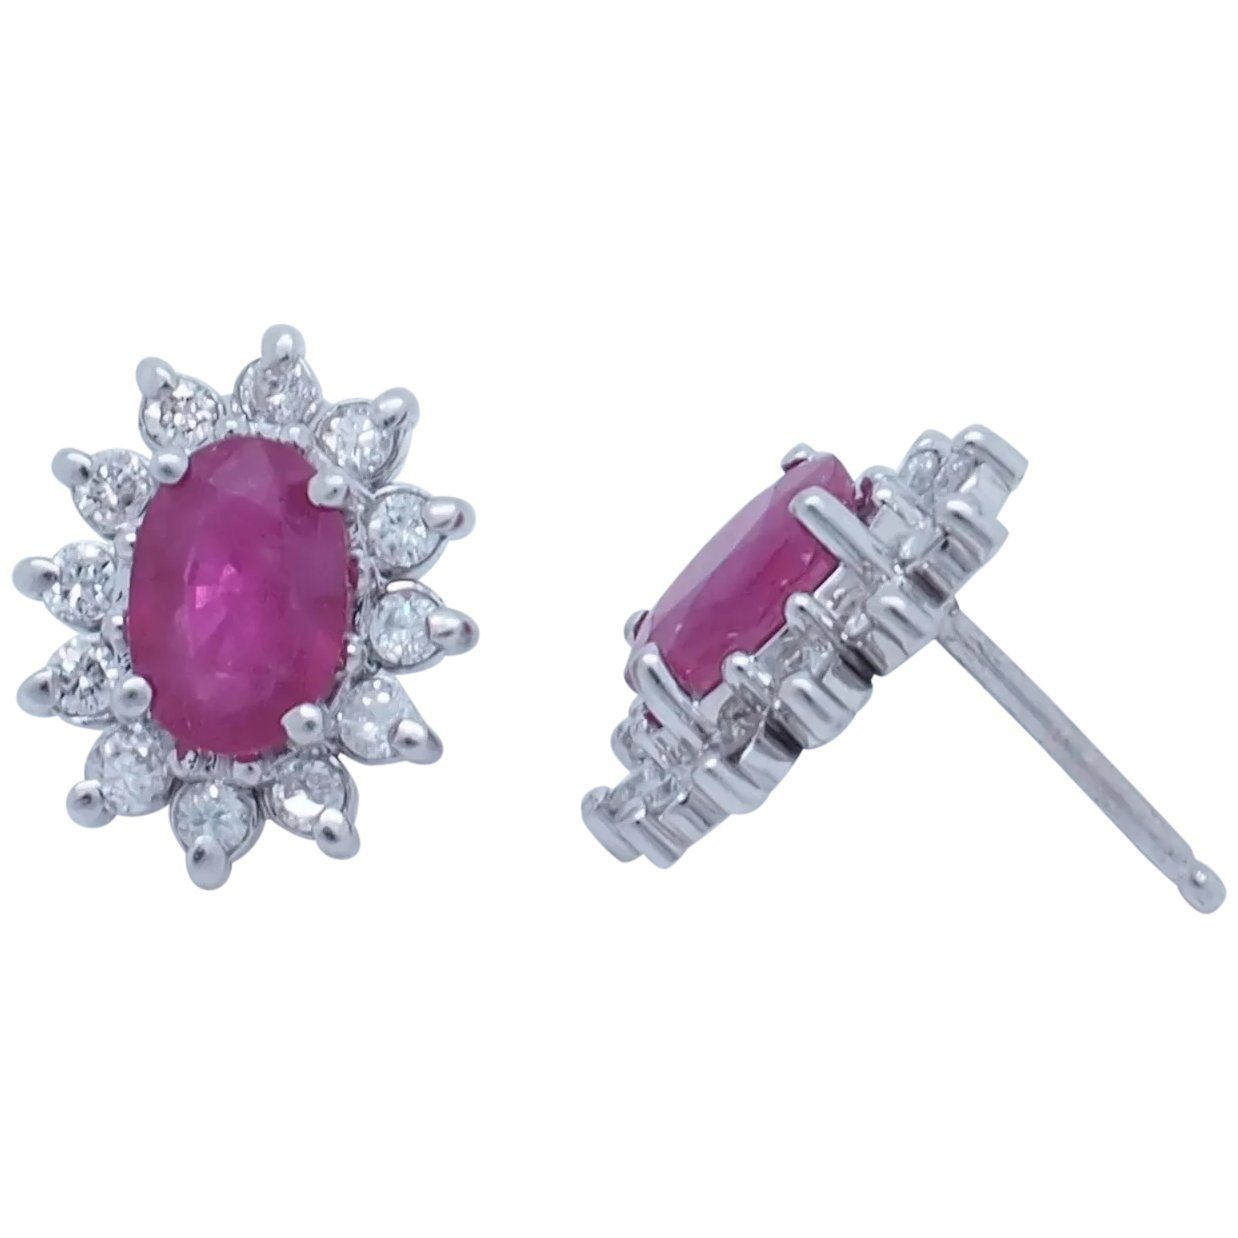 1.00CTW 6mm X 4mm  OVAL  RUBY STERLING SILVER STUDS-